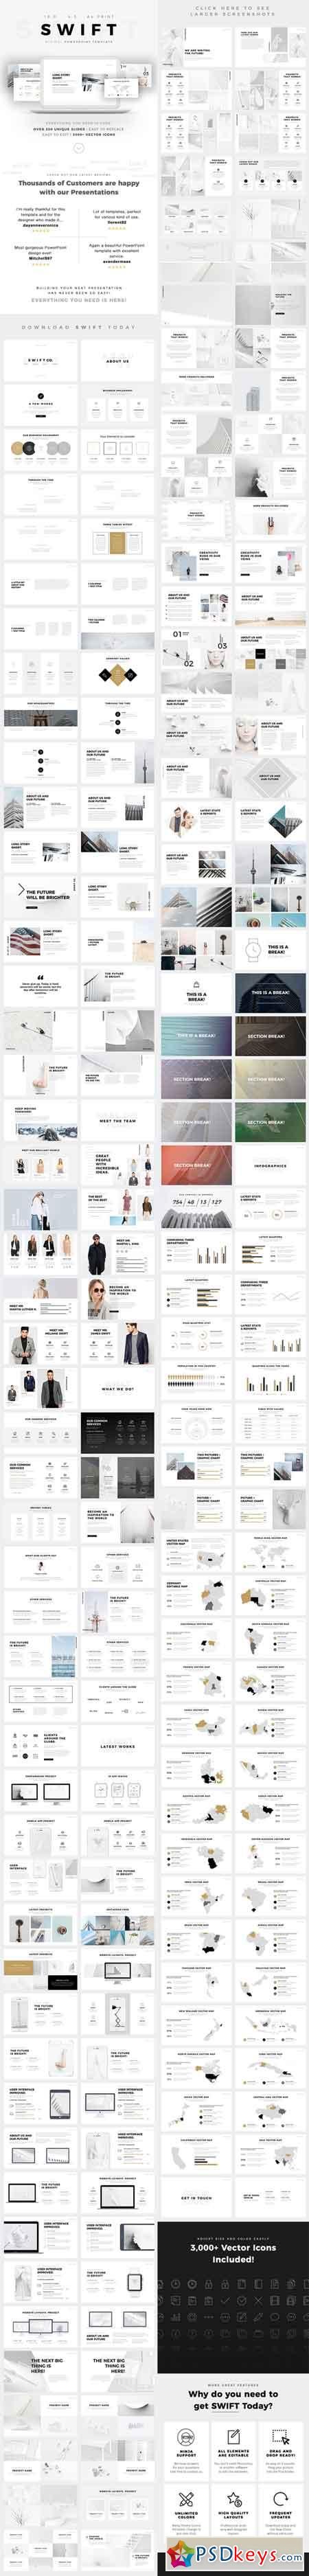 swift minimal powerpoint template builder 19432778 » free download, Presentation templates